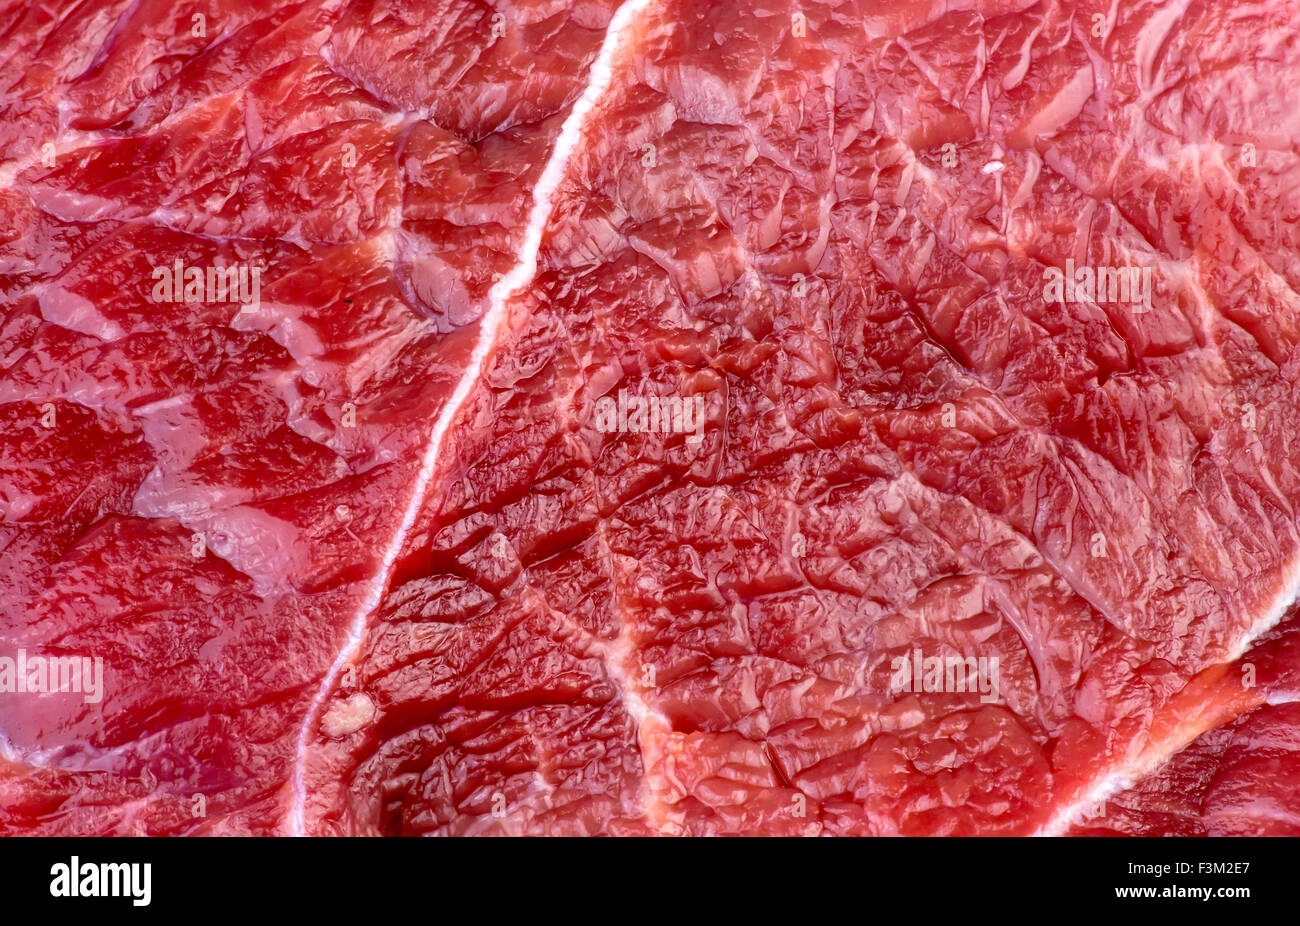 Closeup macro background texture of red beef lamb meat - Stock Image